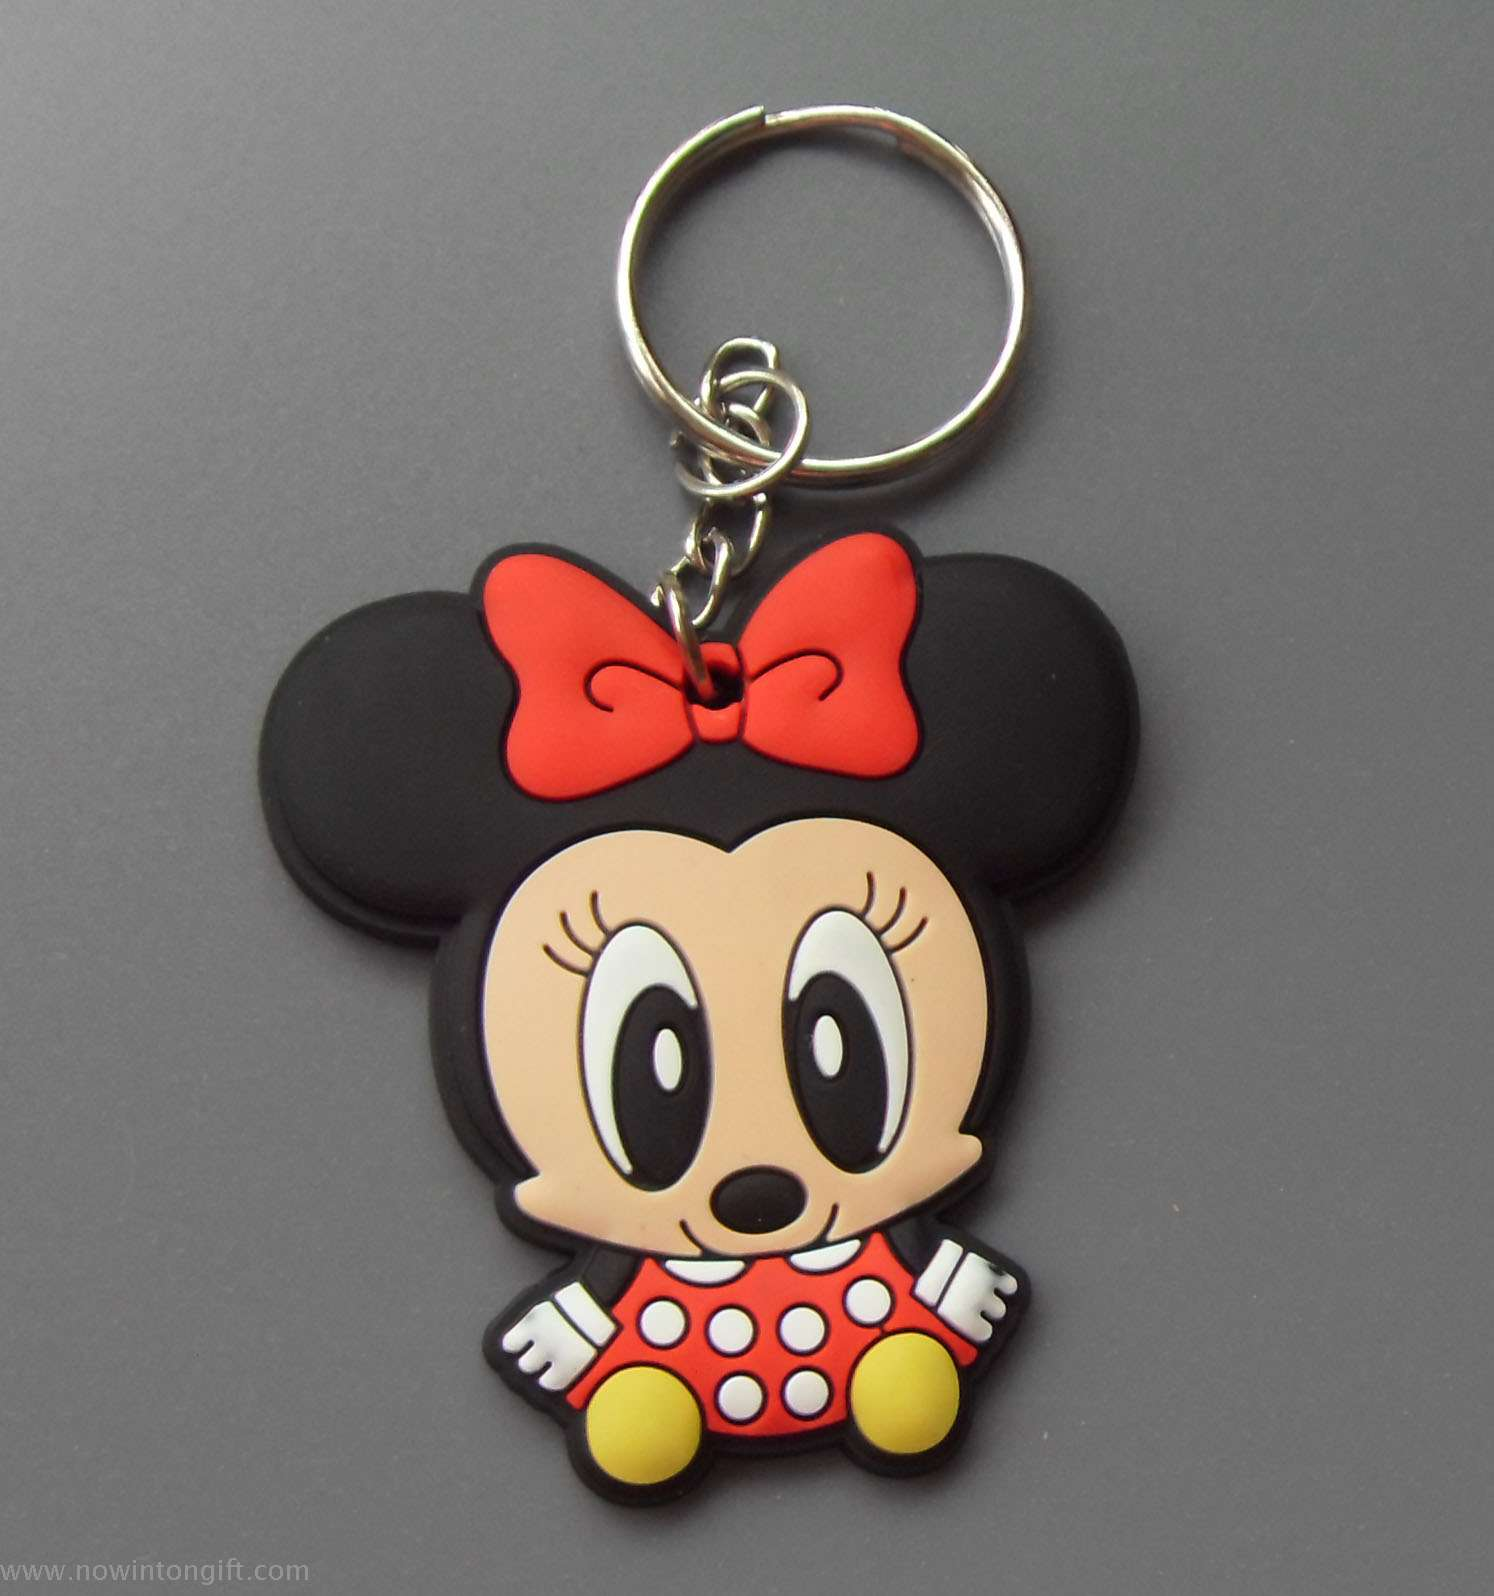 Minnie/Mickey pvc keychains